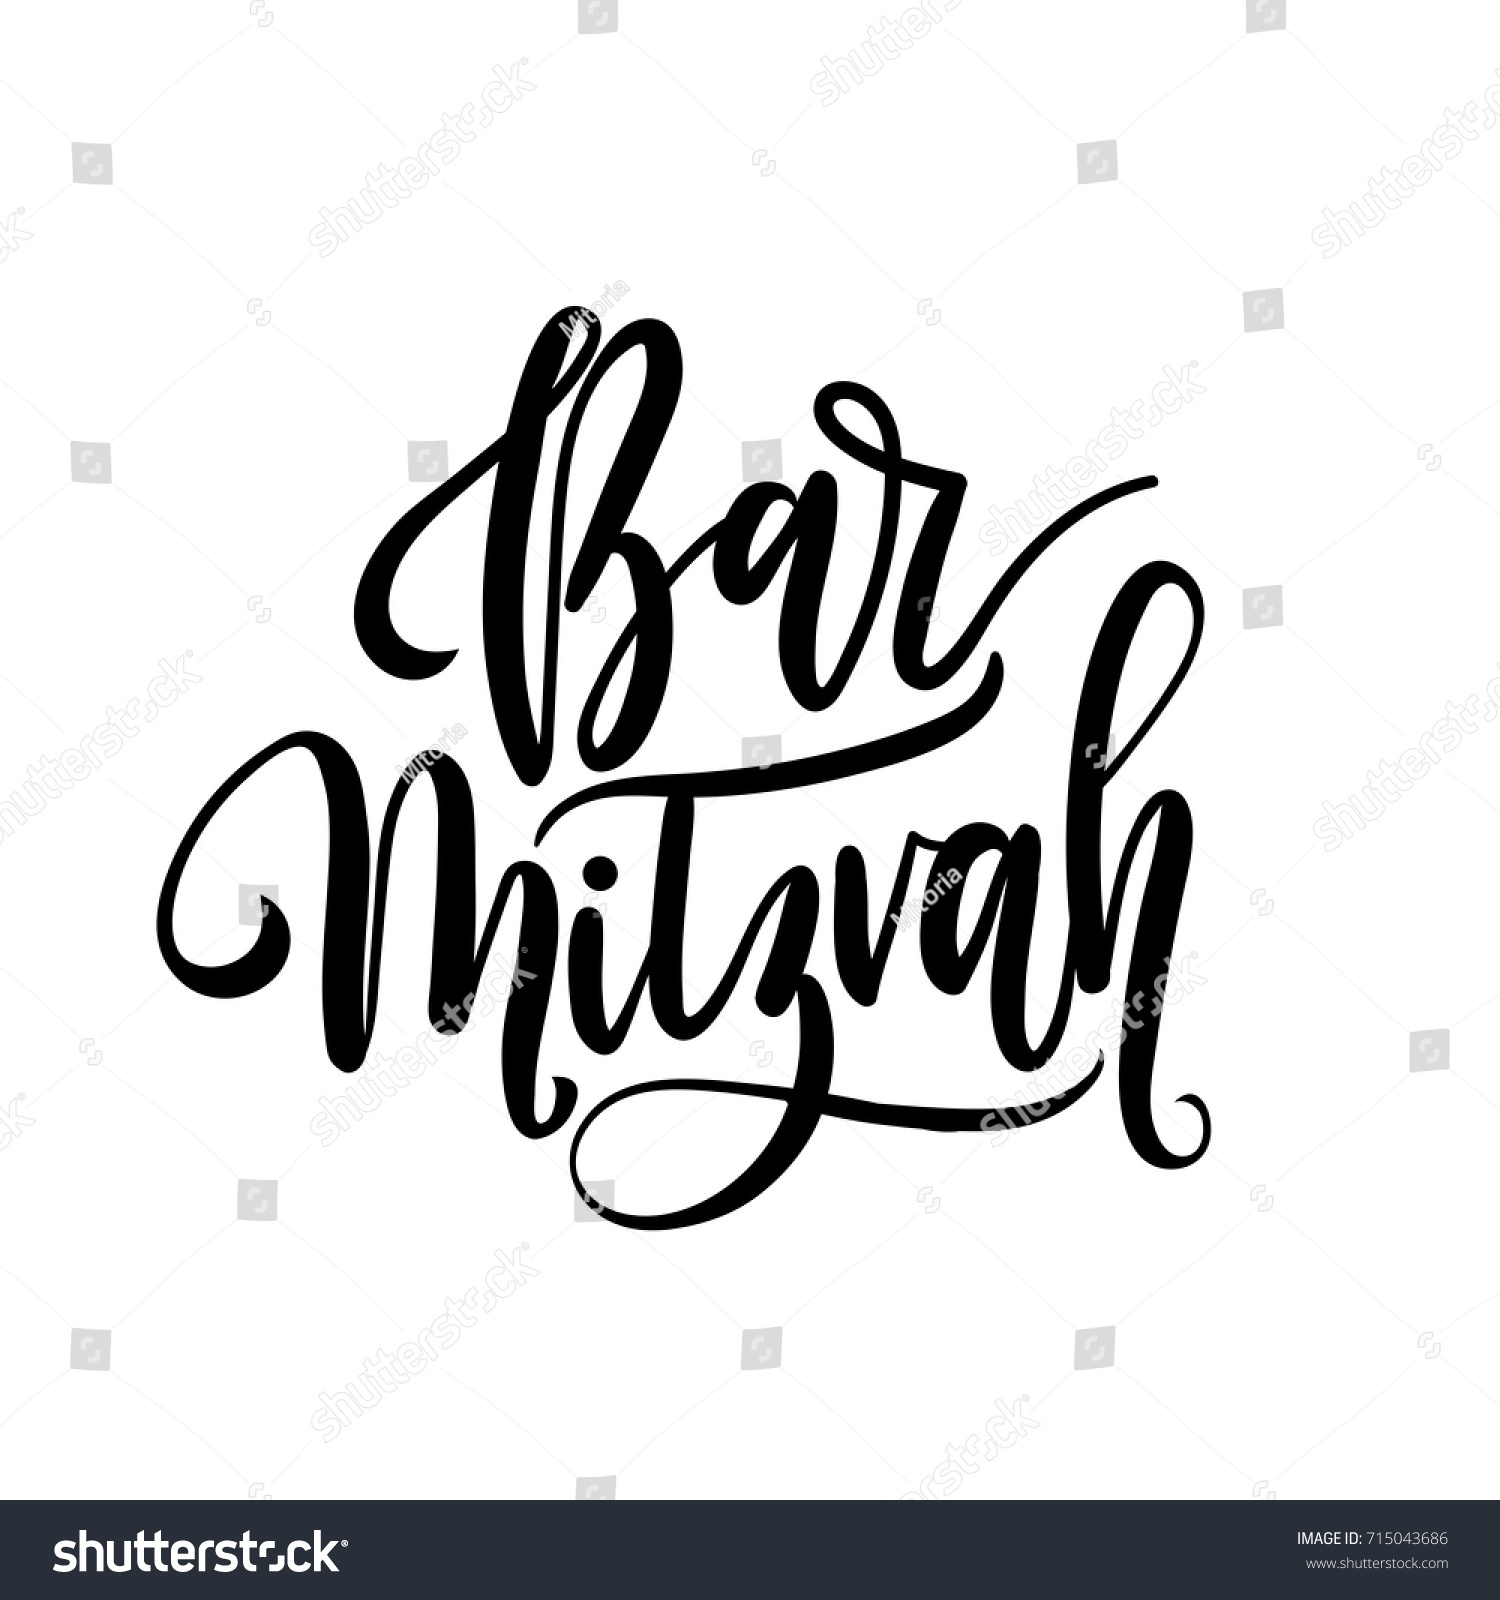 Bar mitzvah congratulations card handwritten congratulations stock bar mitzvah congratulations card handwritten congratulations in hebrew modern lettering vector illustration biocorpaavc Gallery